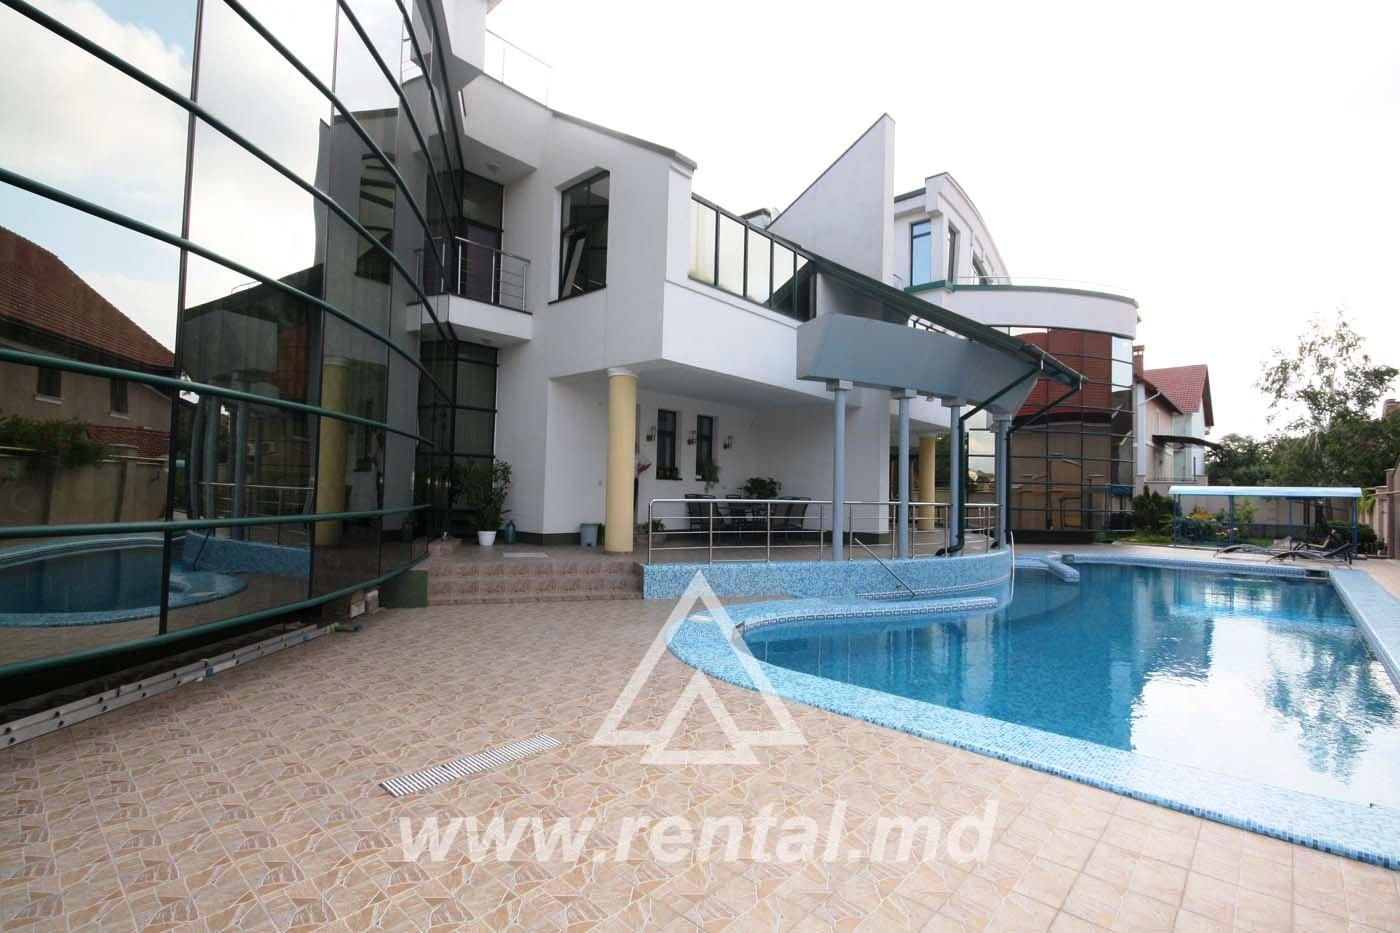 House for rent with swimming pool